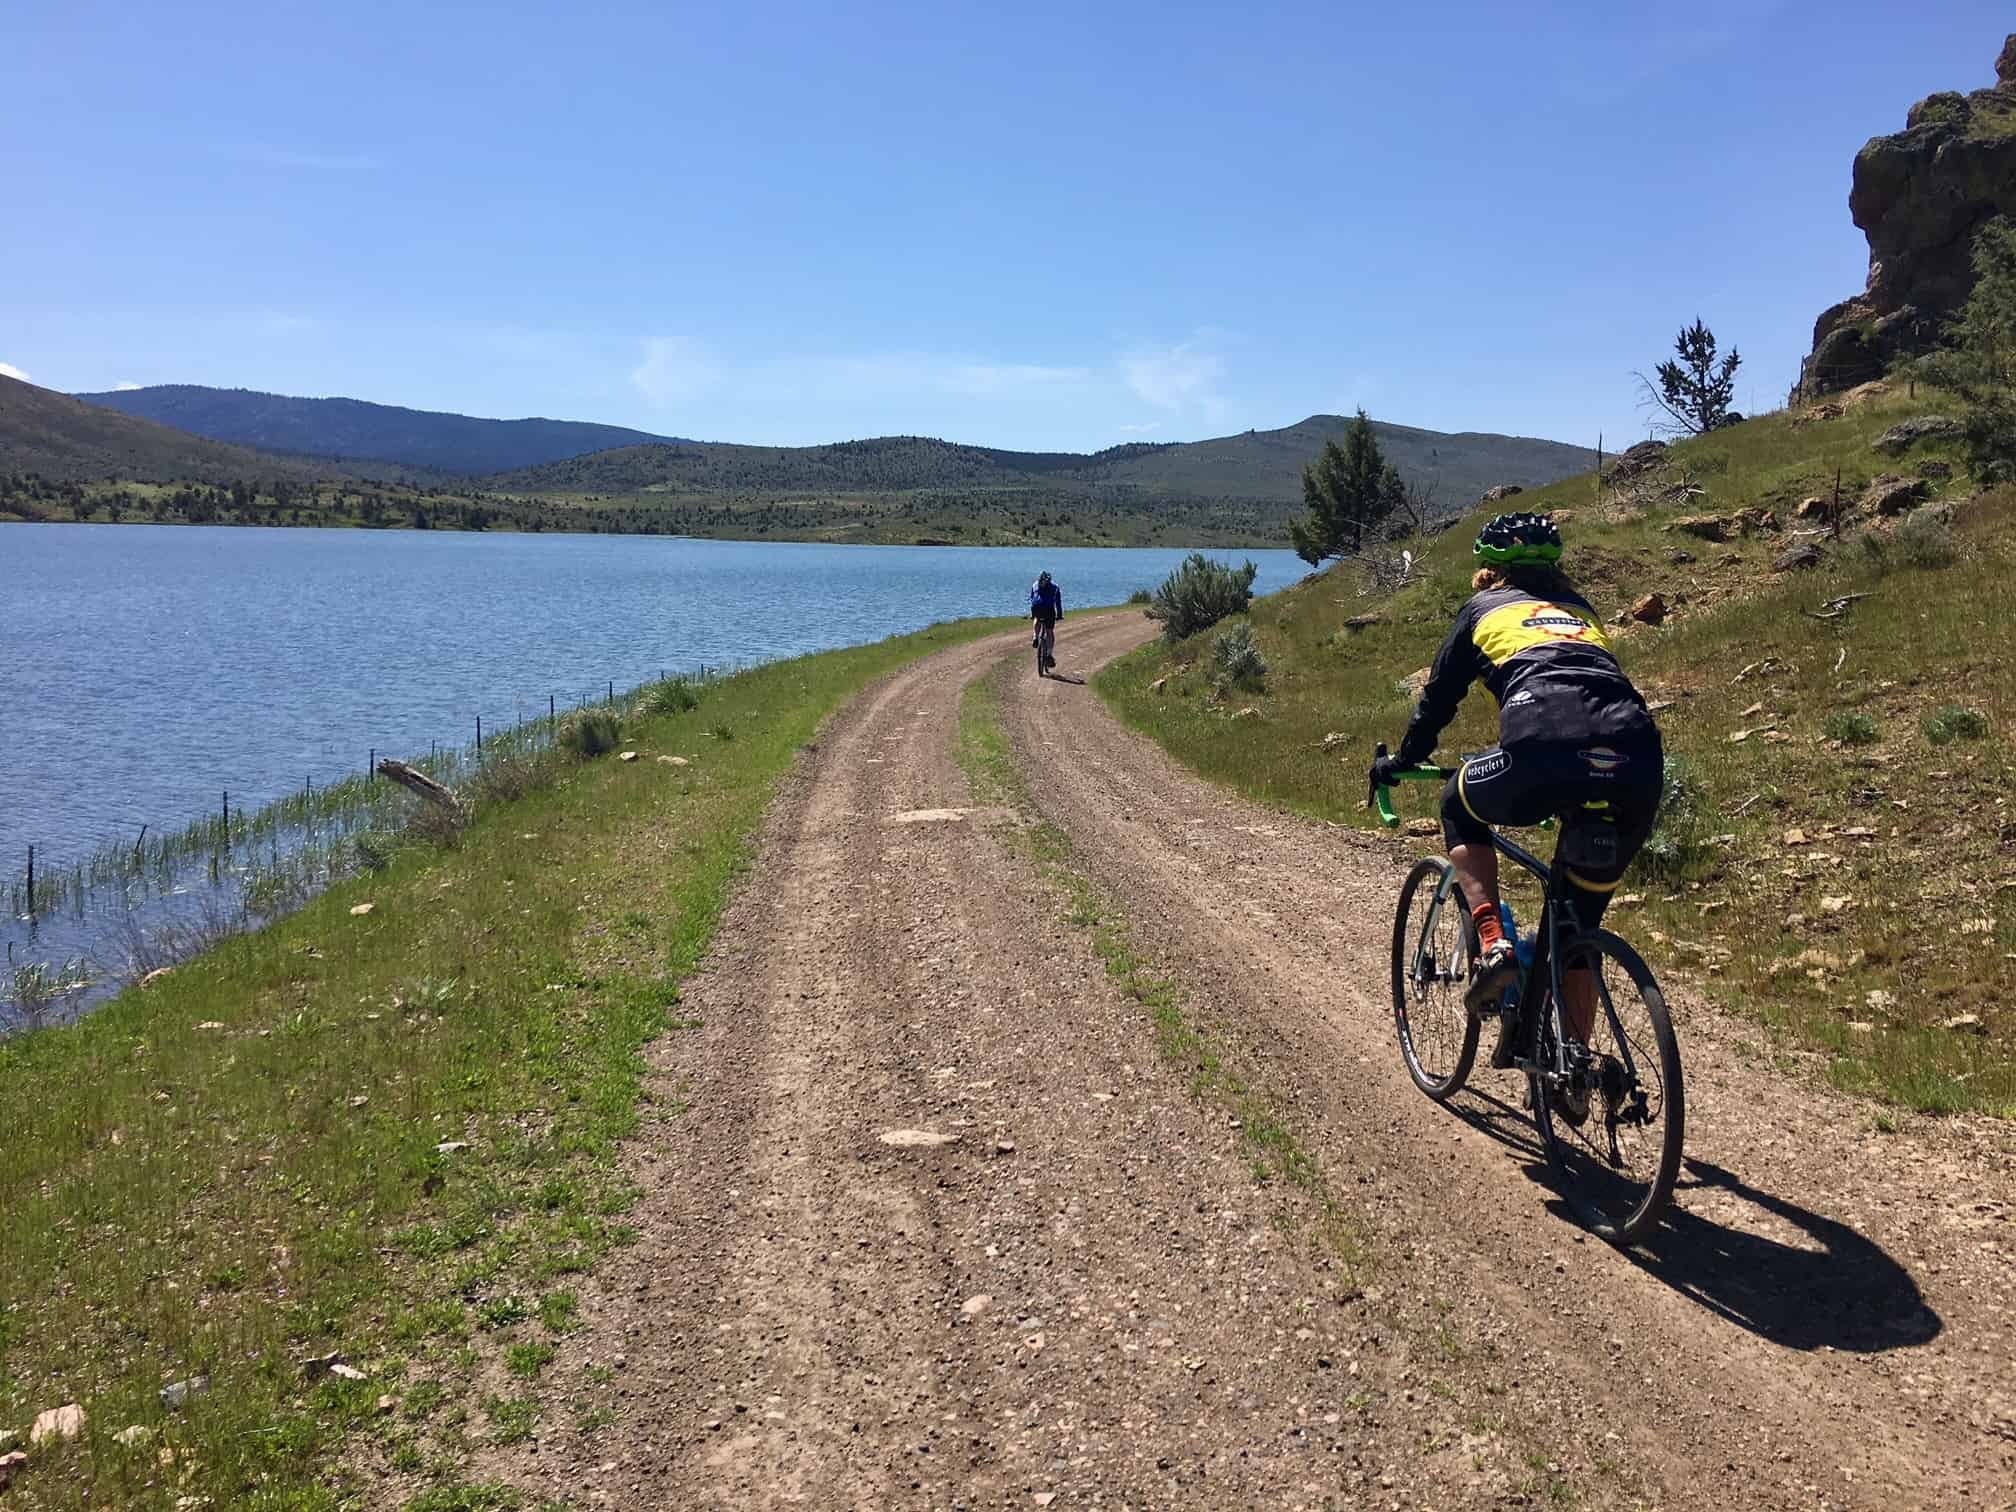 Bike riders on gravel road with Haystack reservoir to left.